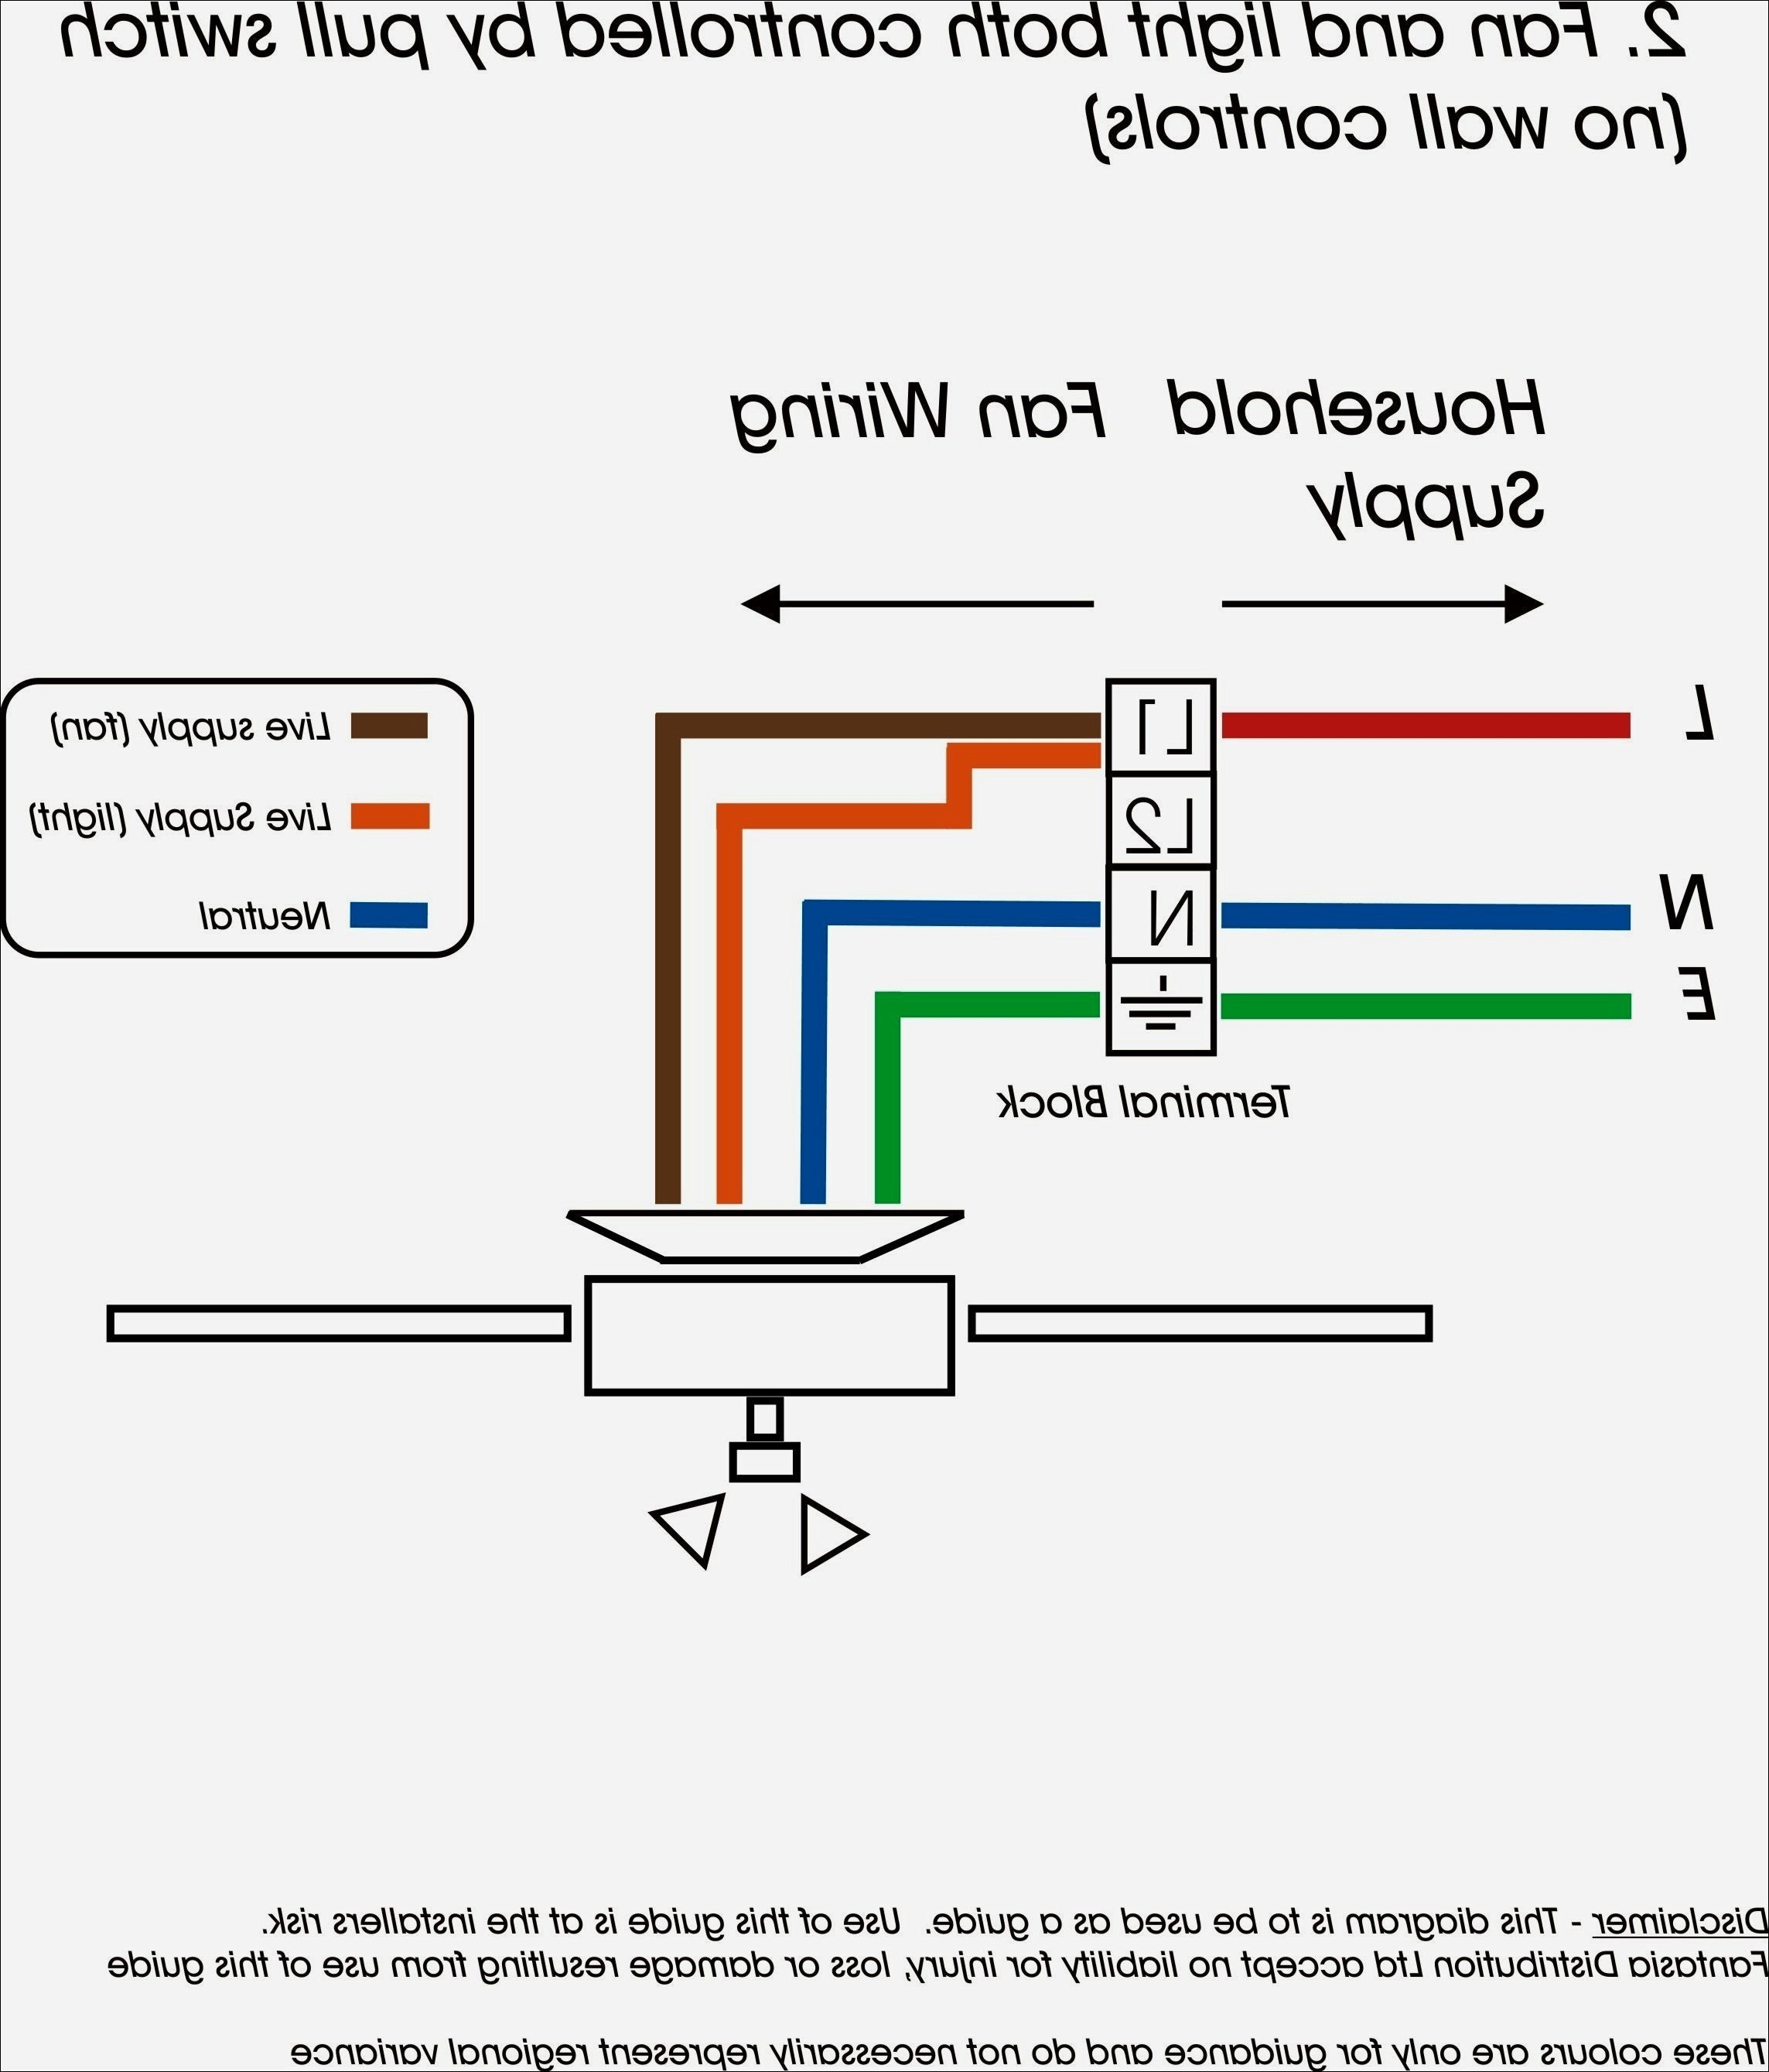 lutron dimmer wiring diagram Download-Valid Wiring Diagram for Dimmer Switch Australia 16-i